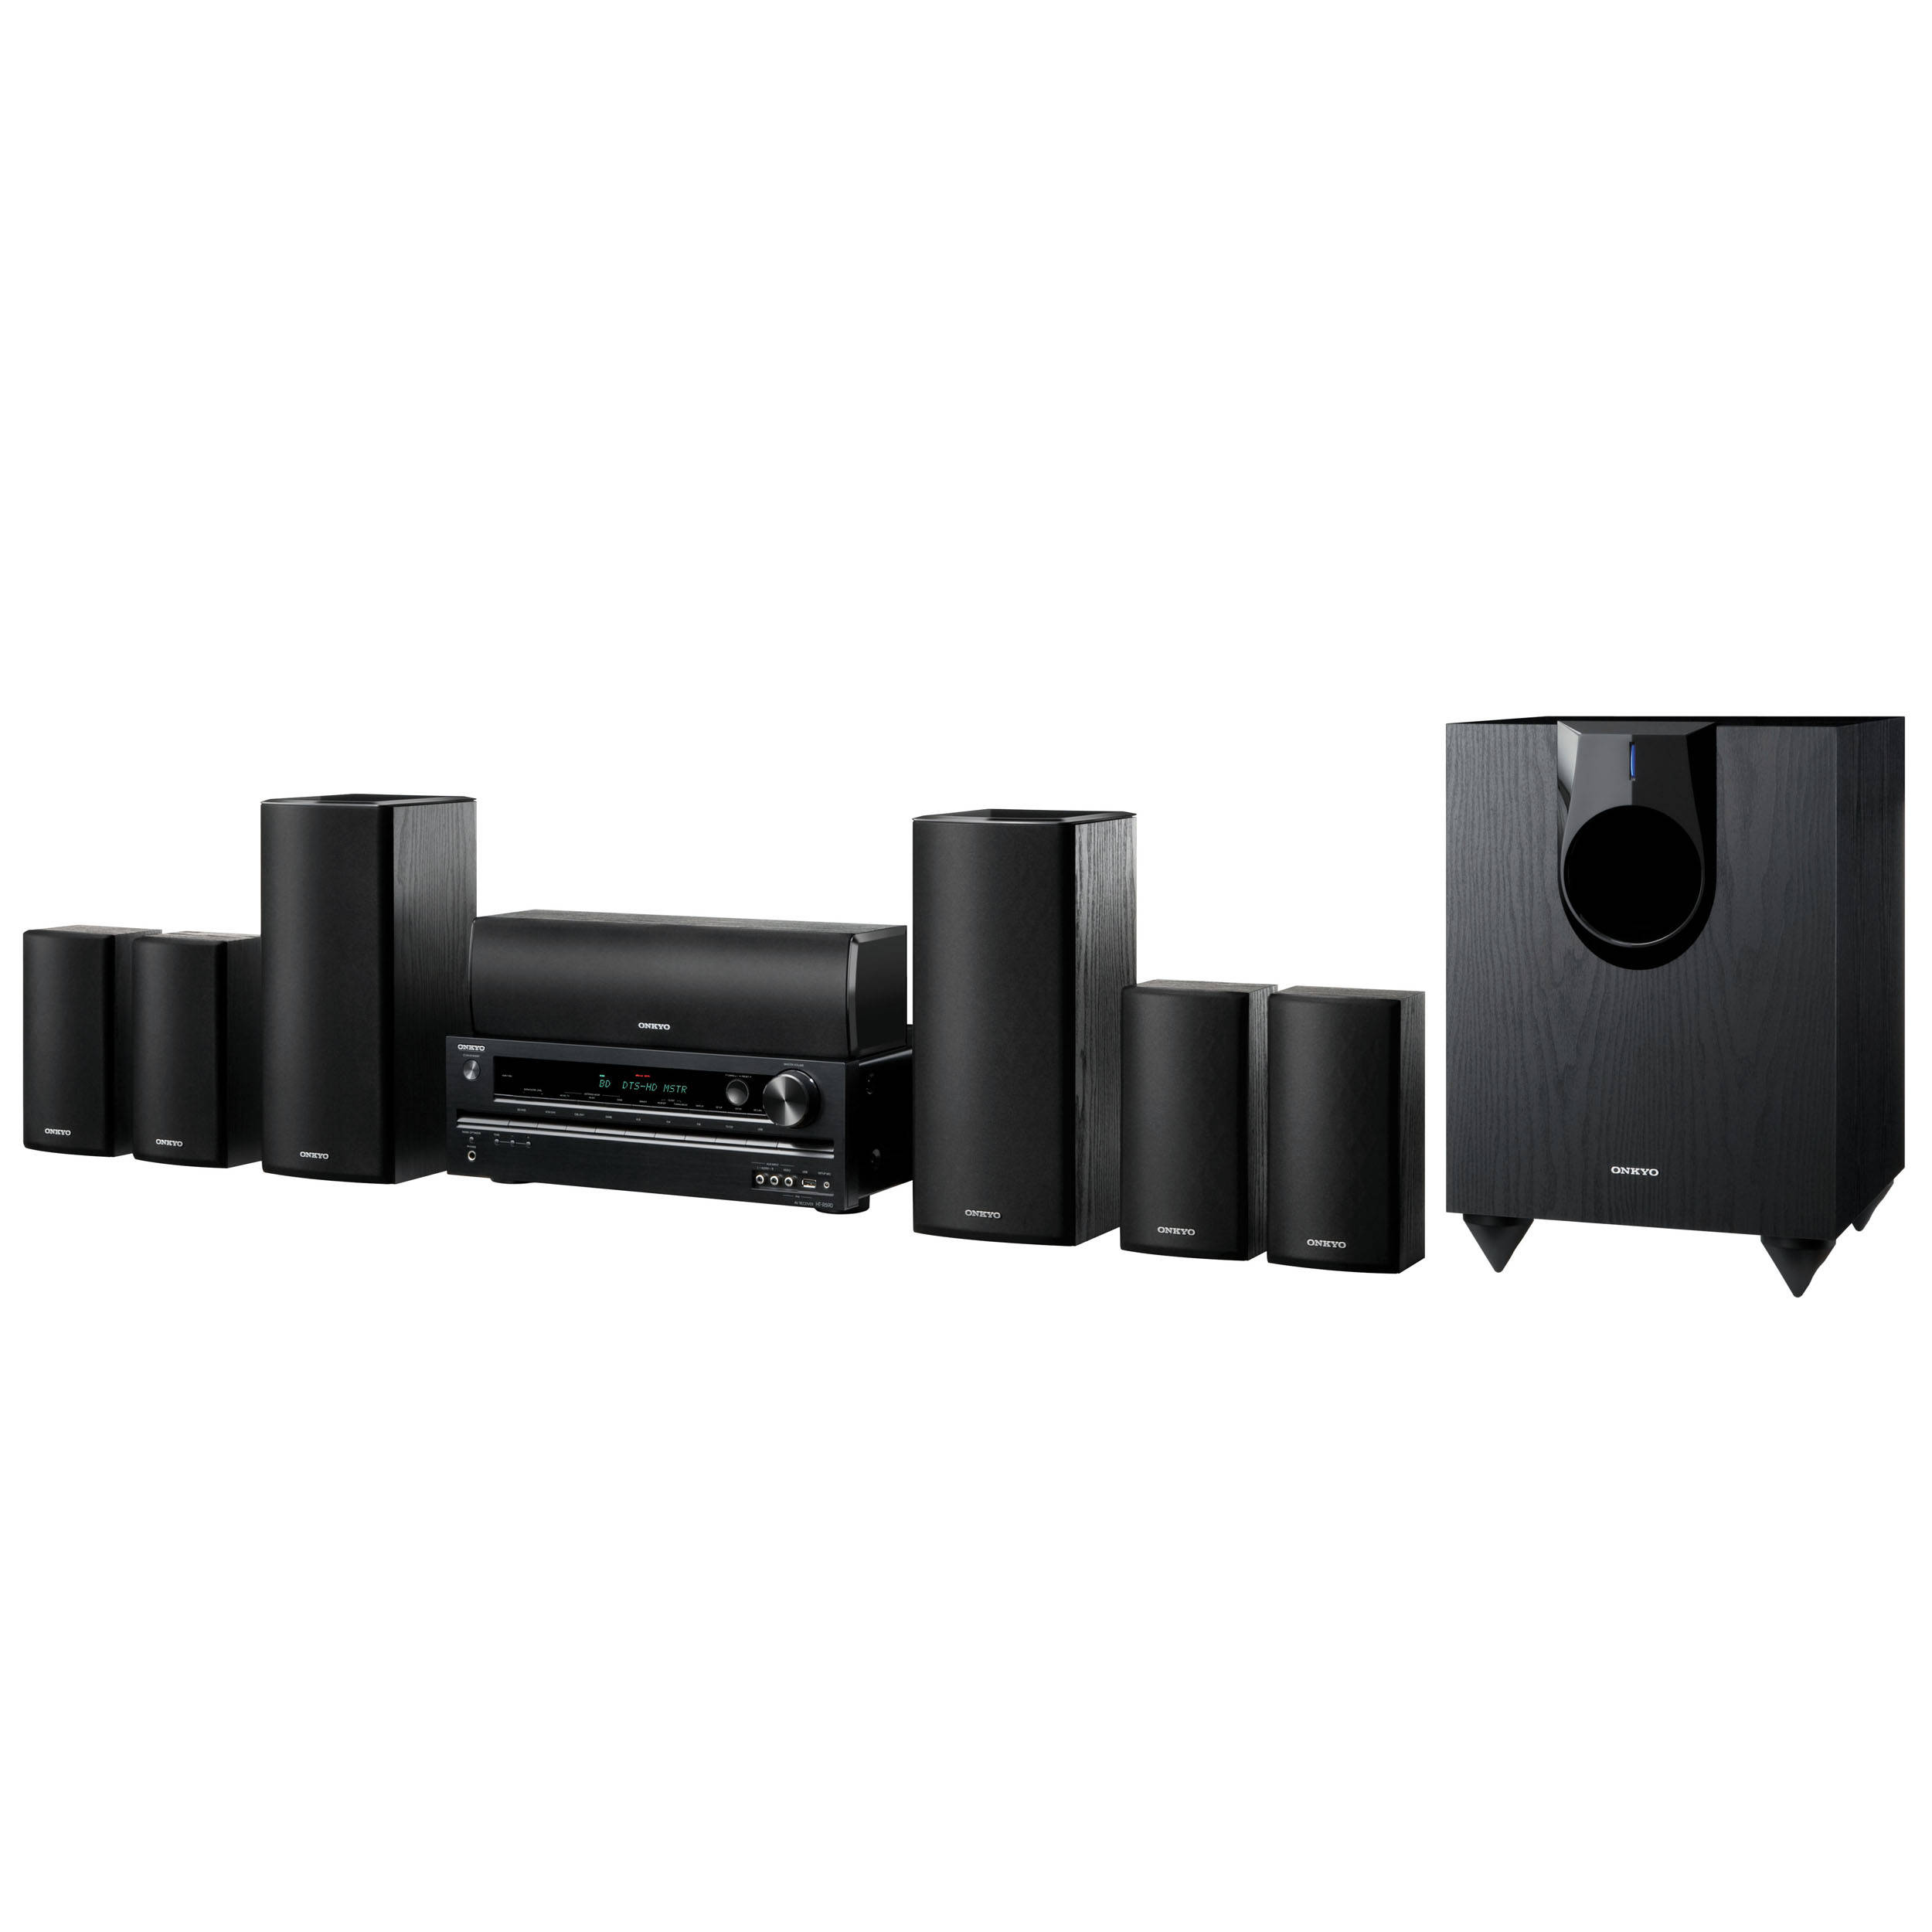 onkyo ht s5400 7 1 home theater system ht s5400q b h photo video. Black Bedroom Furniture Sets. Home Design Ideas